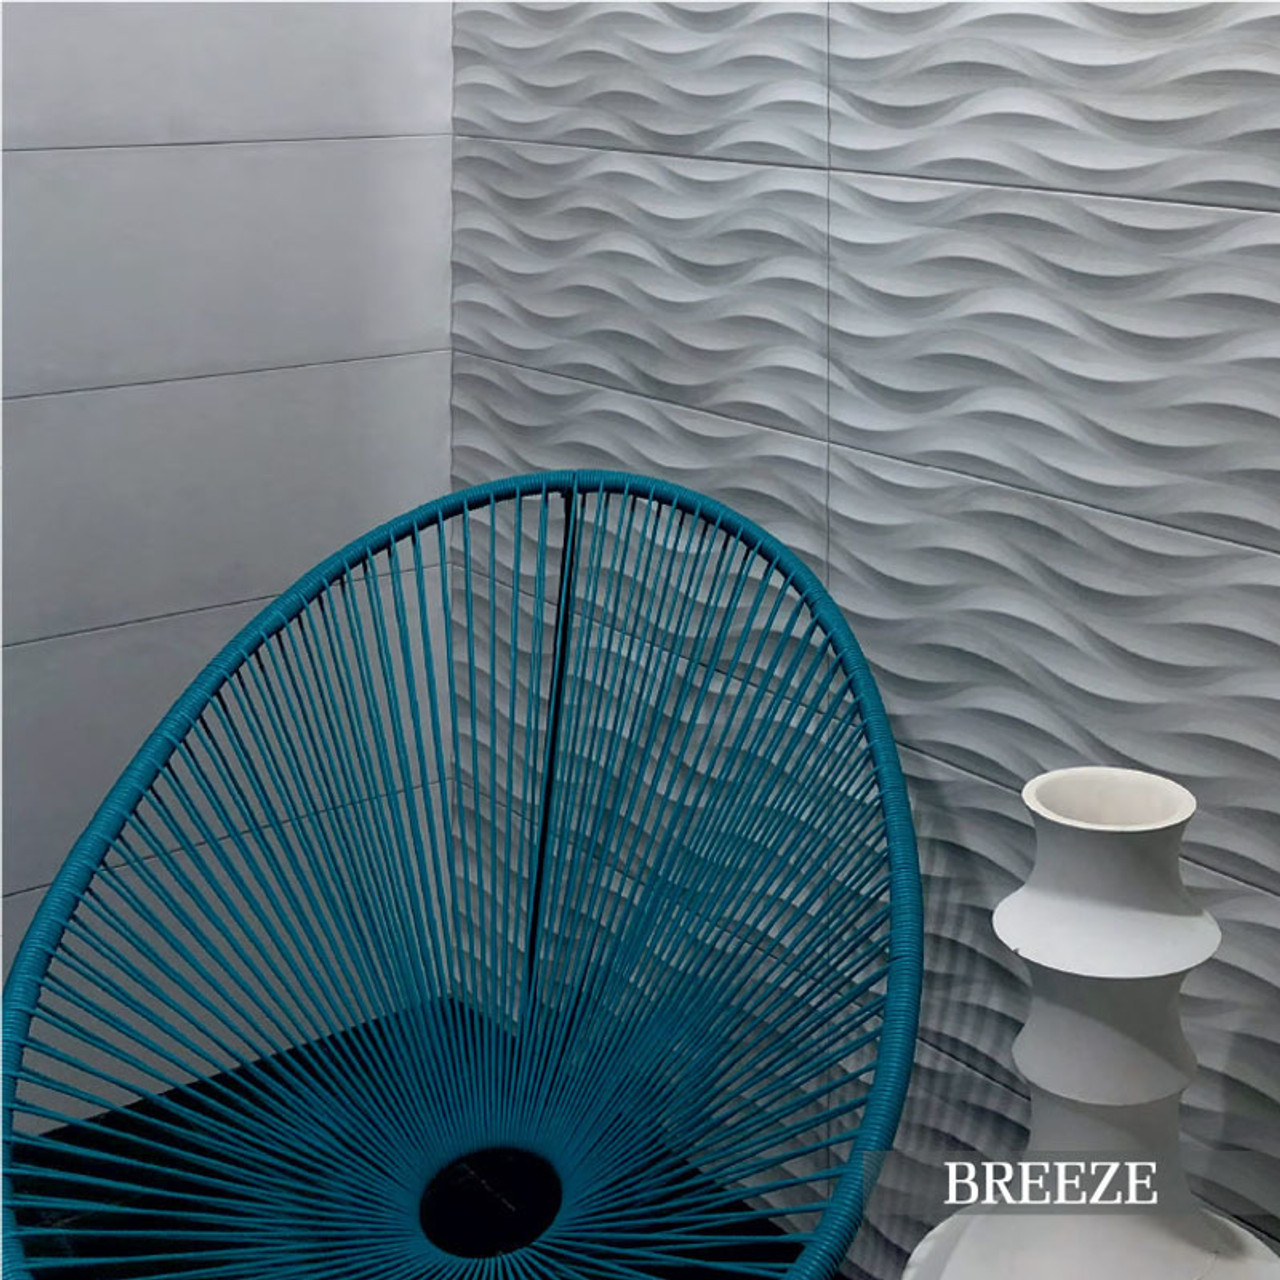 Summer Breeze Ceramic Wall Tile Collection